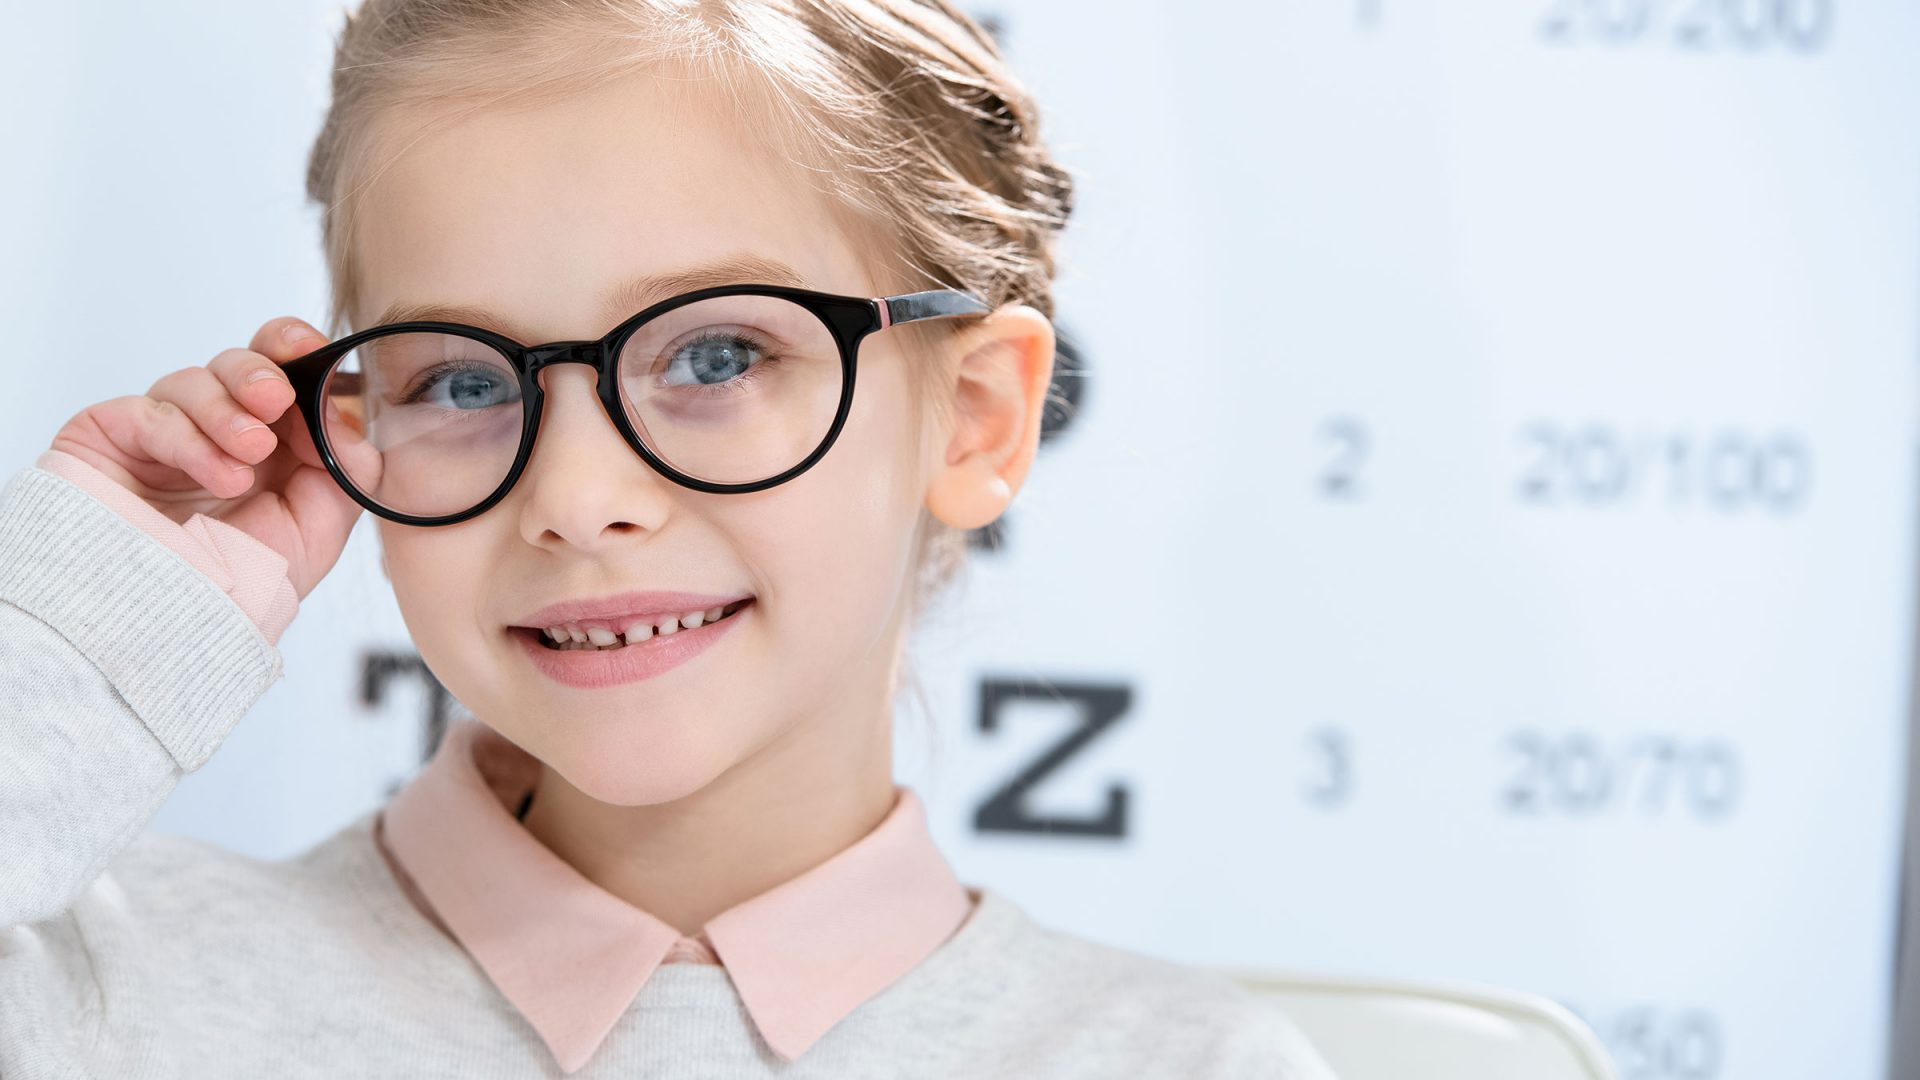 young girl with nice glasses standing near an eye chart